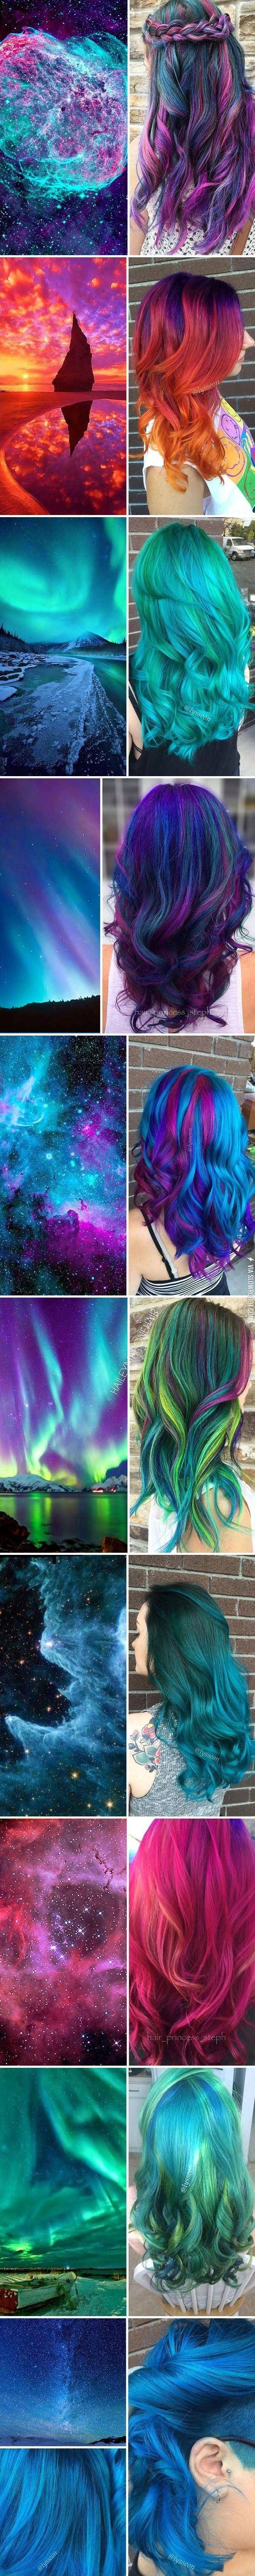 This 'Galaxy Hair' trend is spectacular